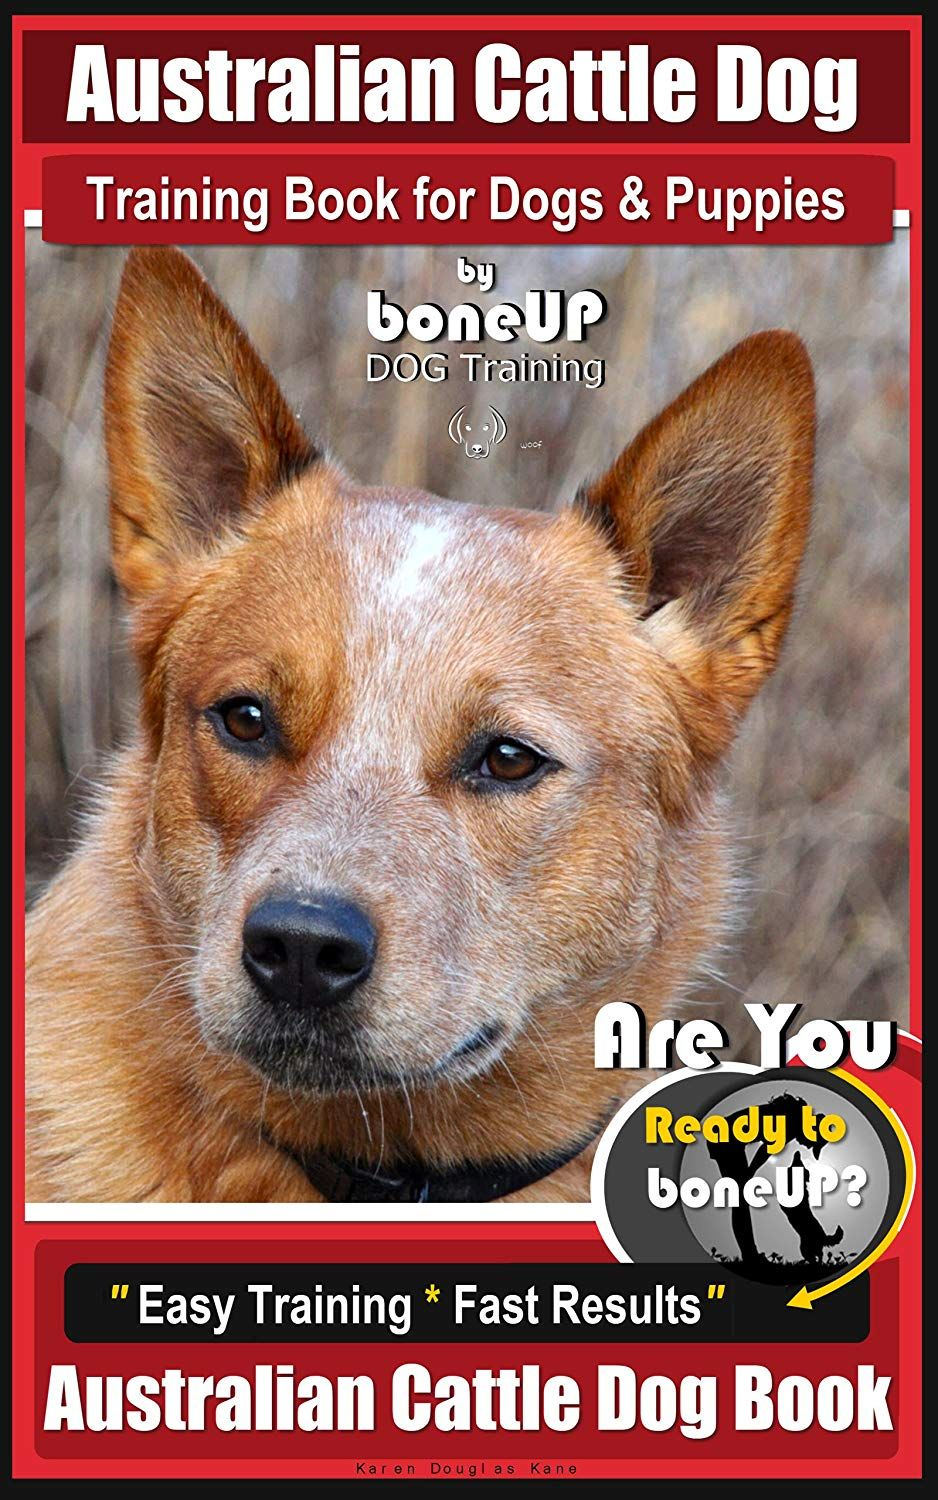 Australian Cattle Dog Training Book For Dogs And Puppies By Bone